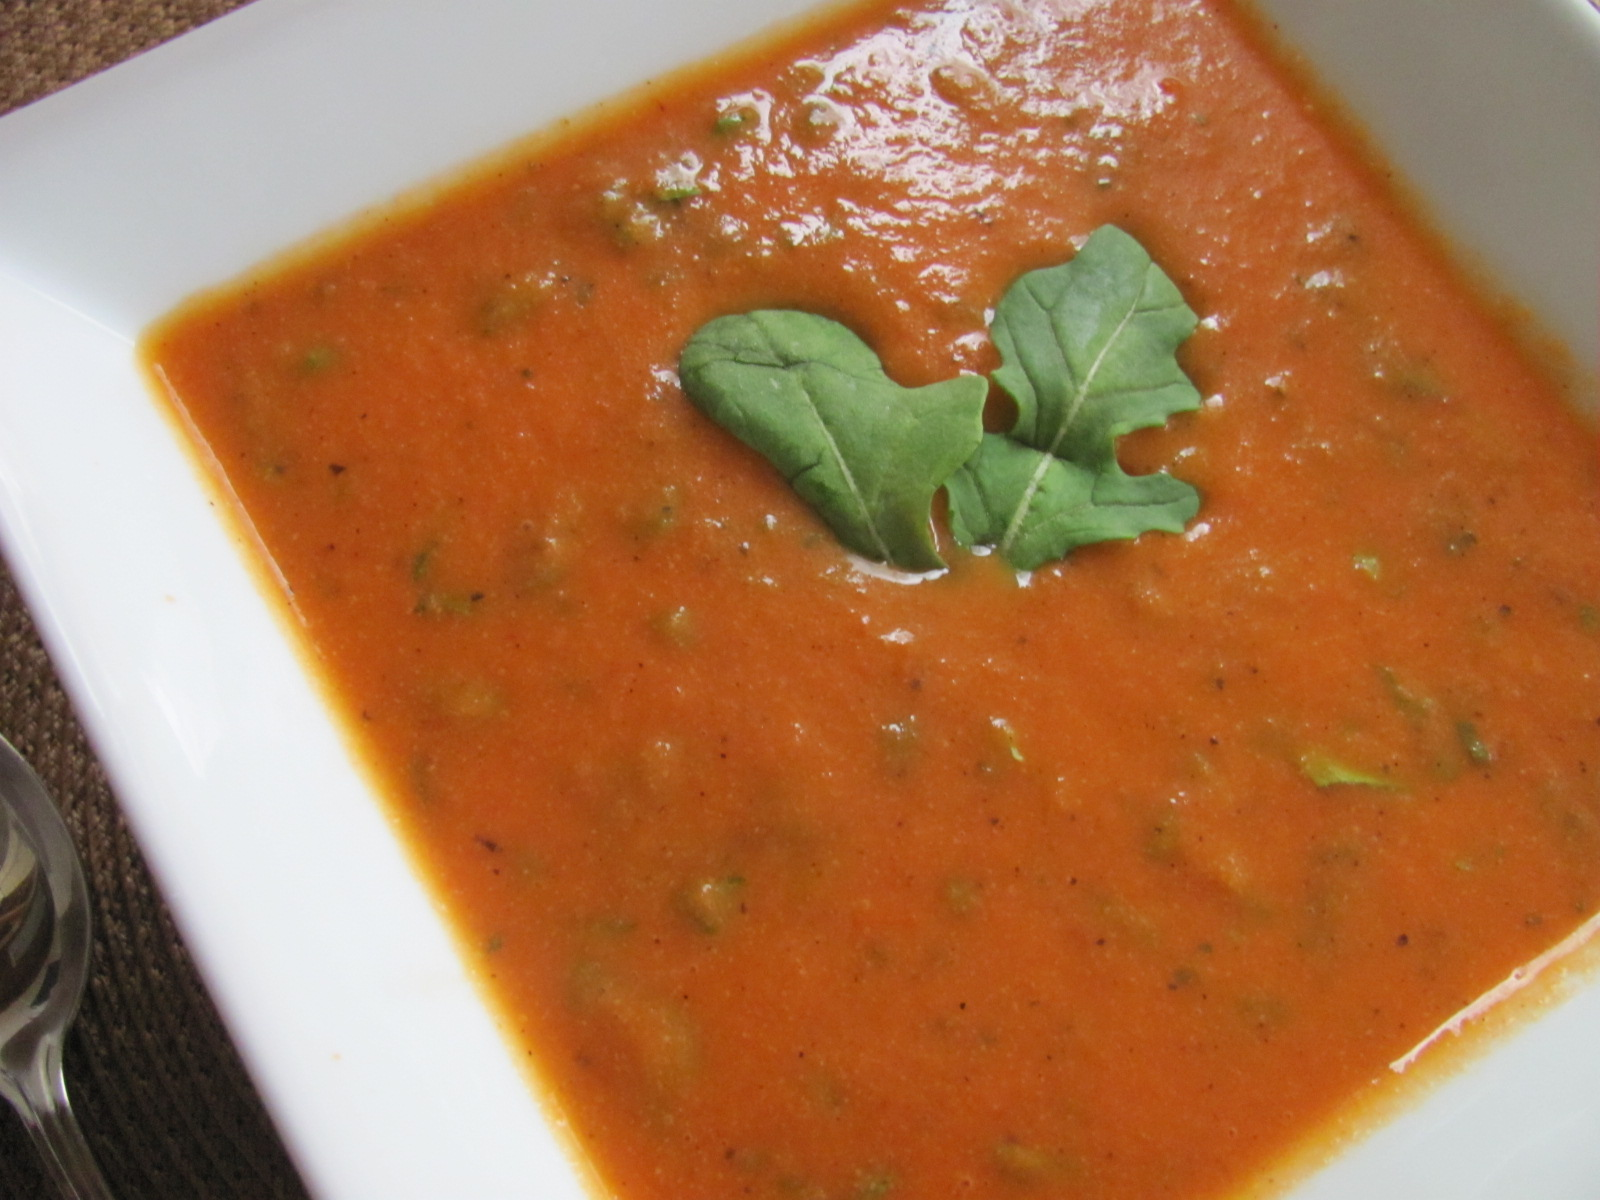 ... Time Saving Recipes: Smoky Tomato Bisque with Arugula and Cashew Cream